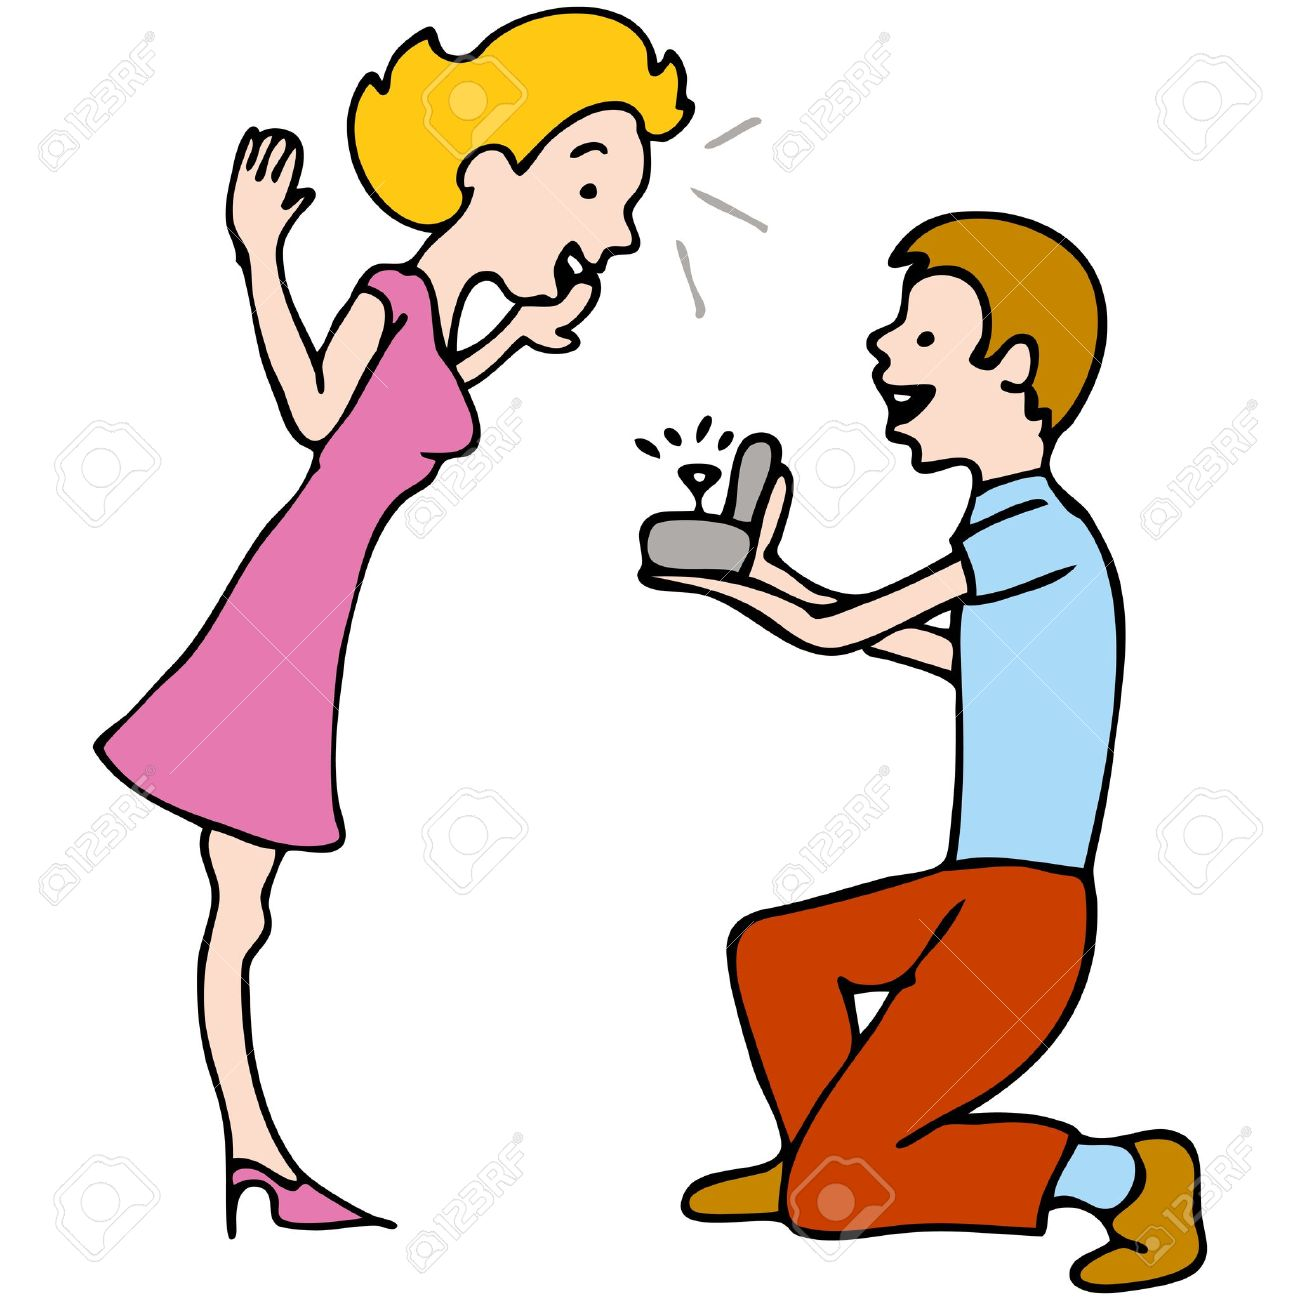 Will you marry me clipart.